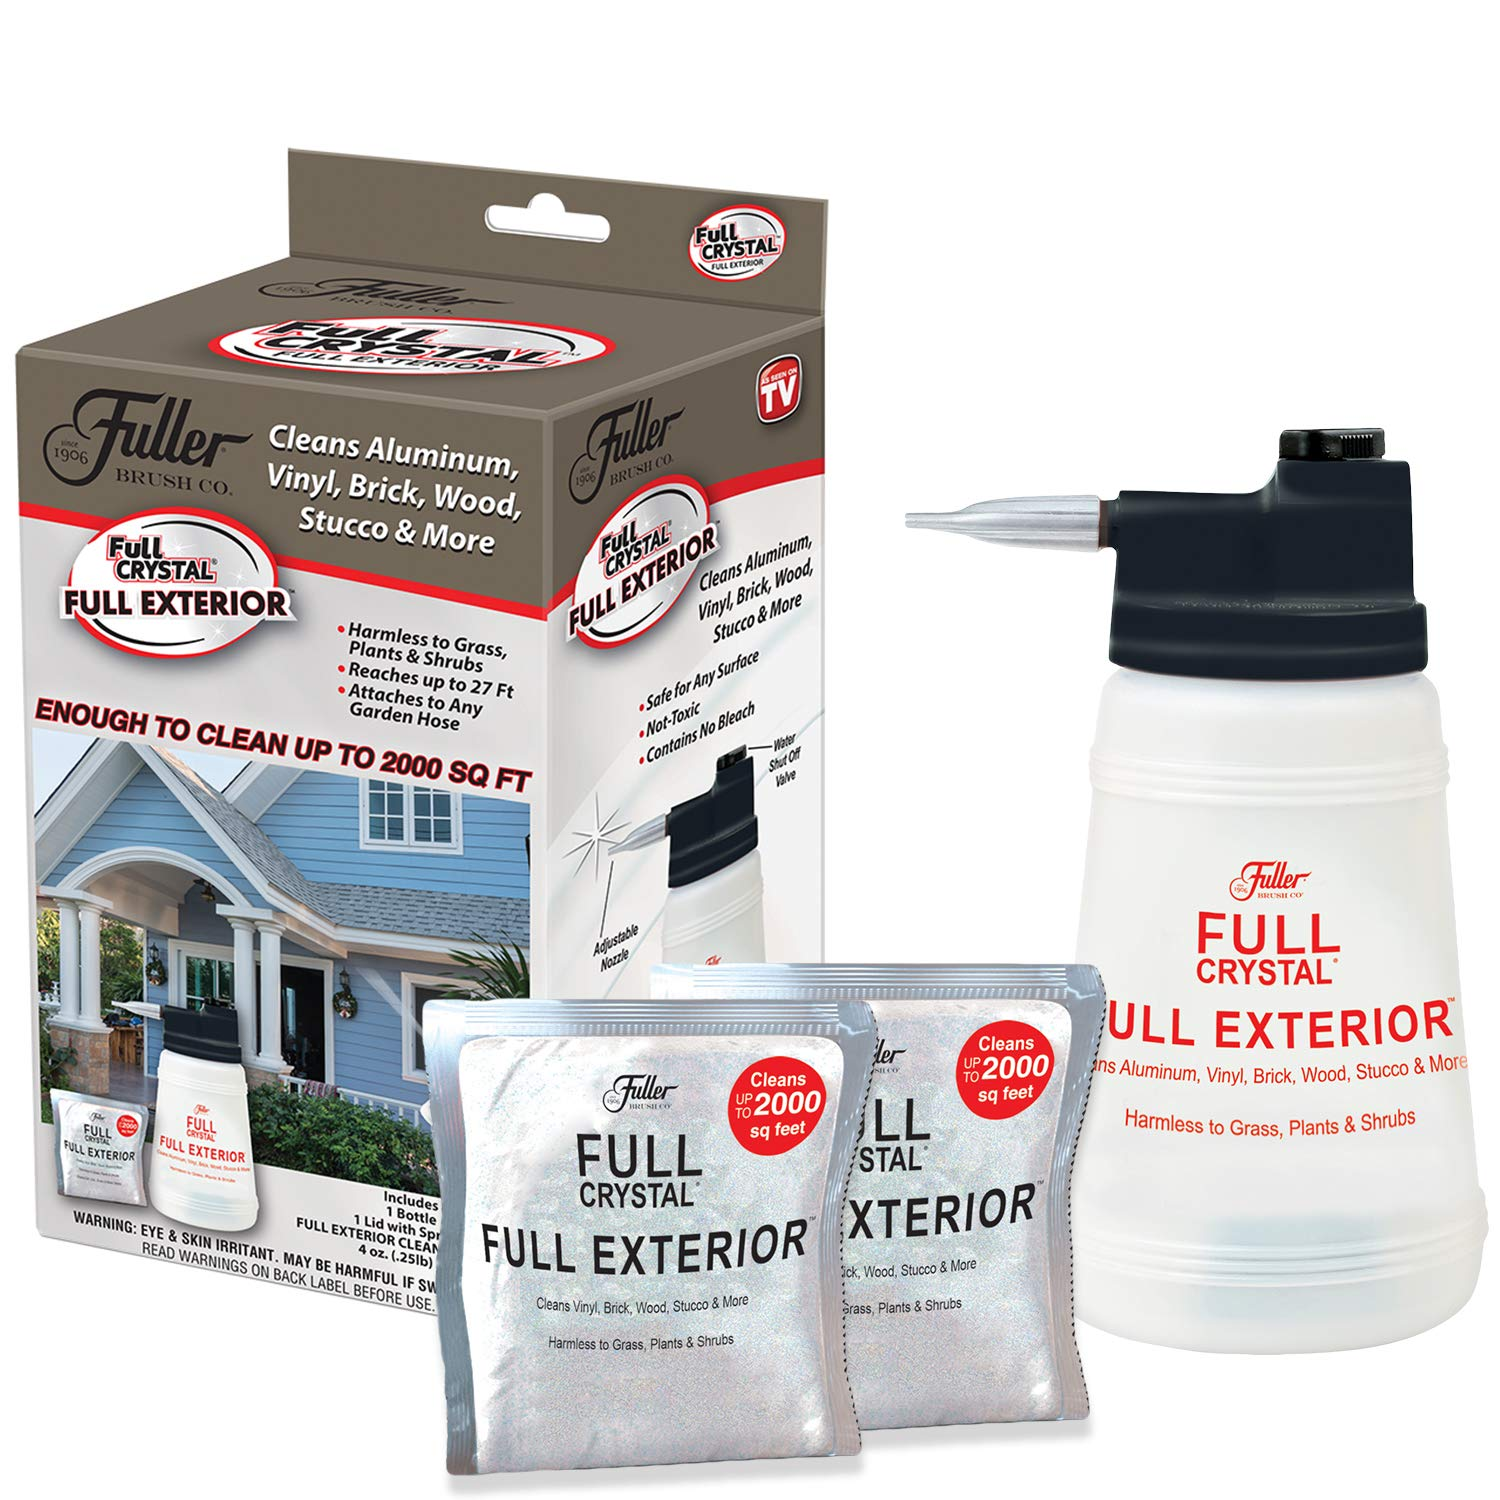 Full Exterior TV Kit-Bottle, Lid with Hose Attachment, and Two 4 oz. Crystal Powder-Outdoor Cleaner- Removes Oil, Grease, and Grime- Reaches up to 27 Feet. by Full Crystal (Image #1)